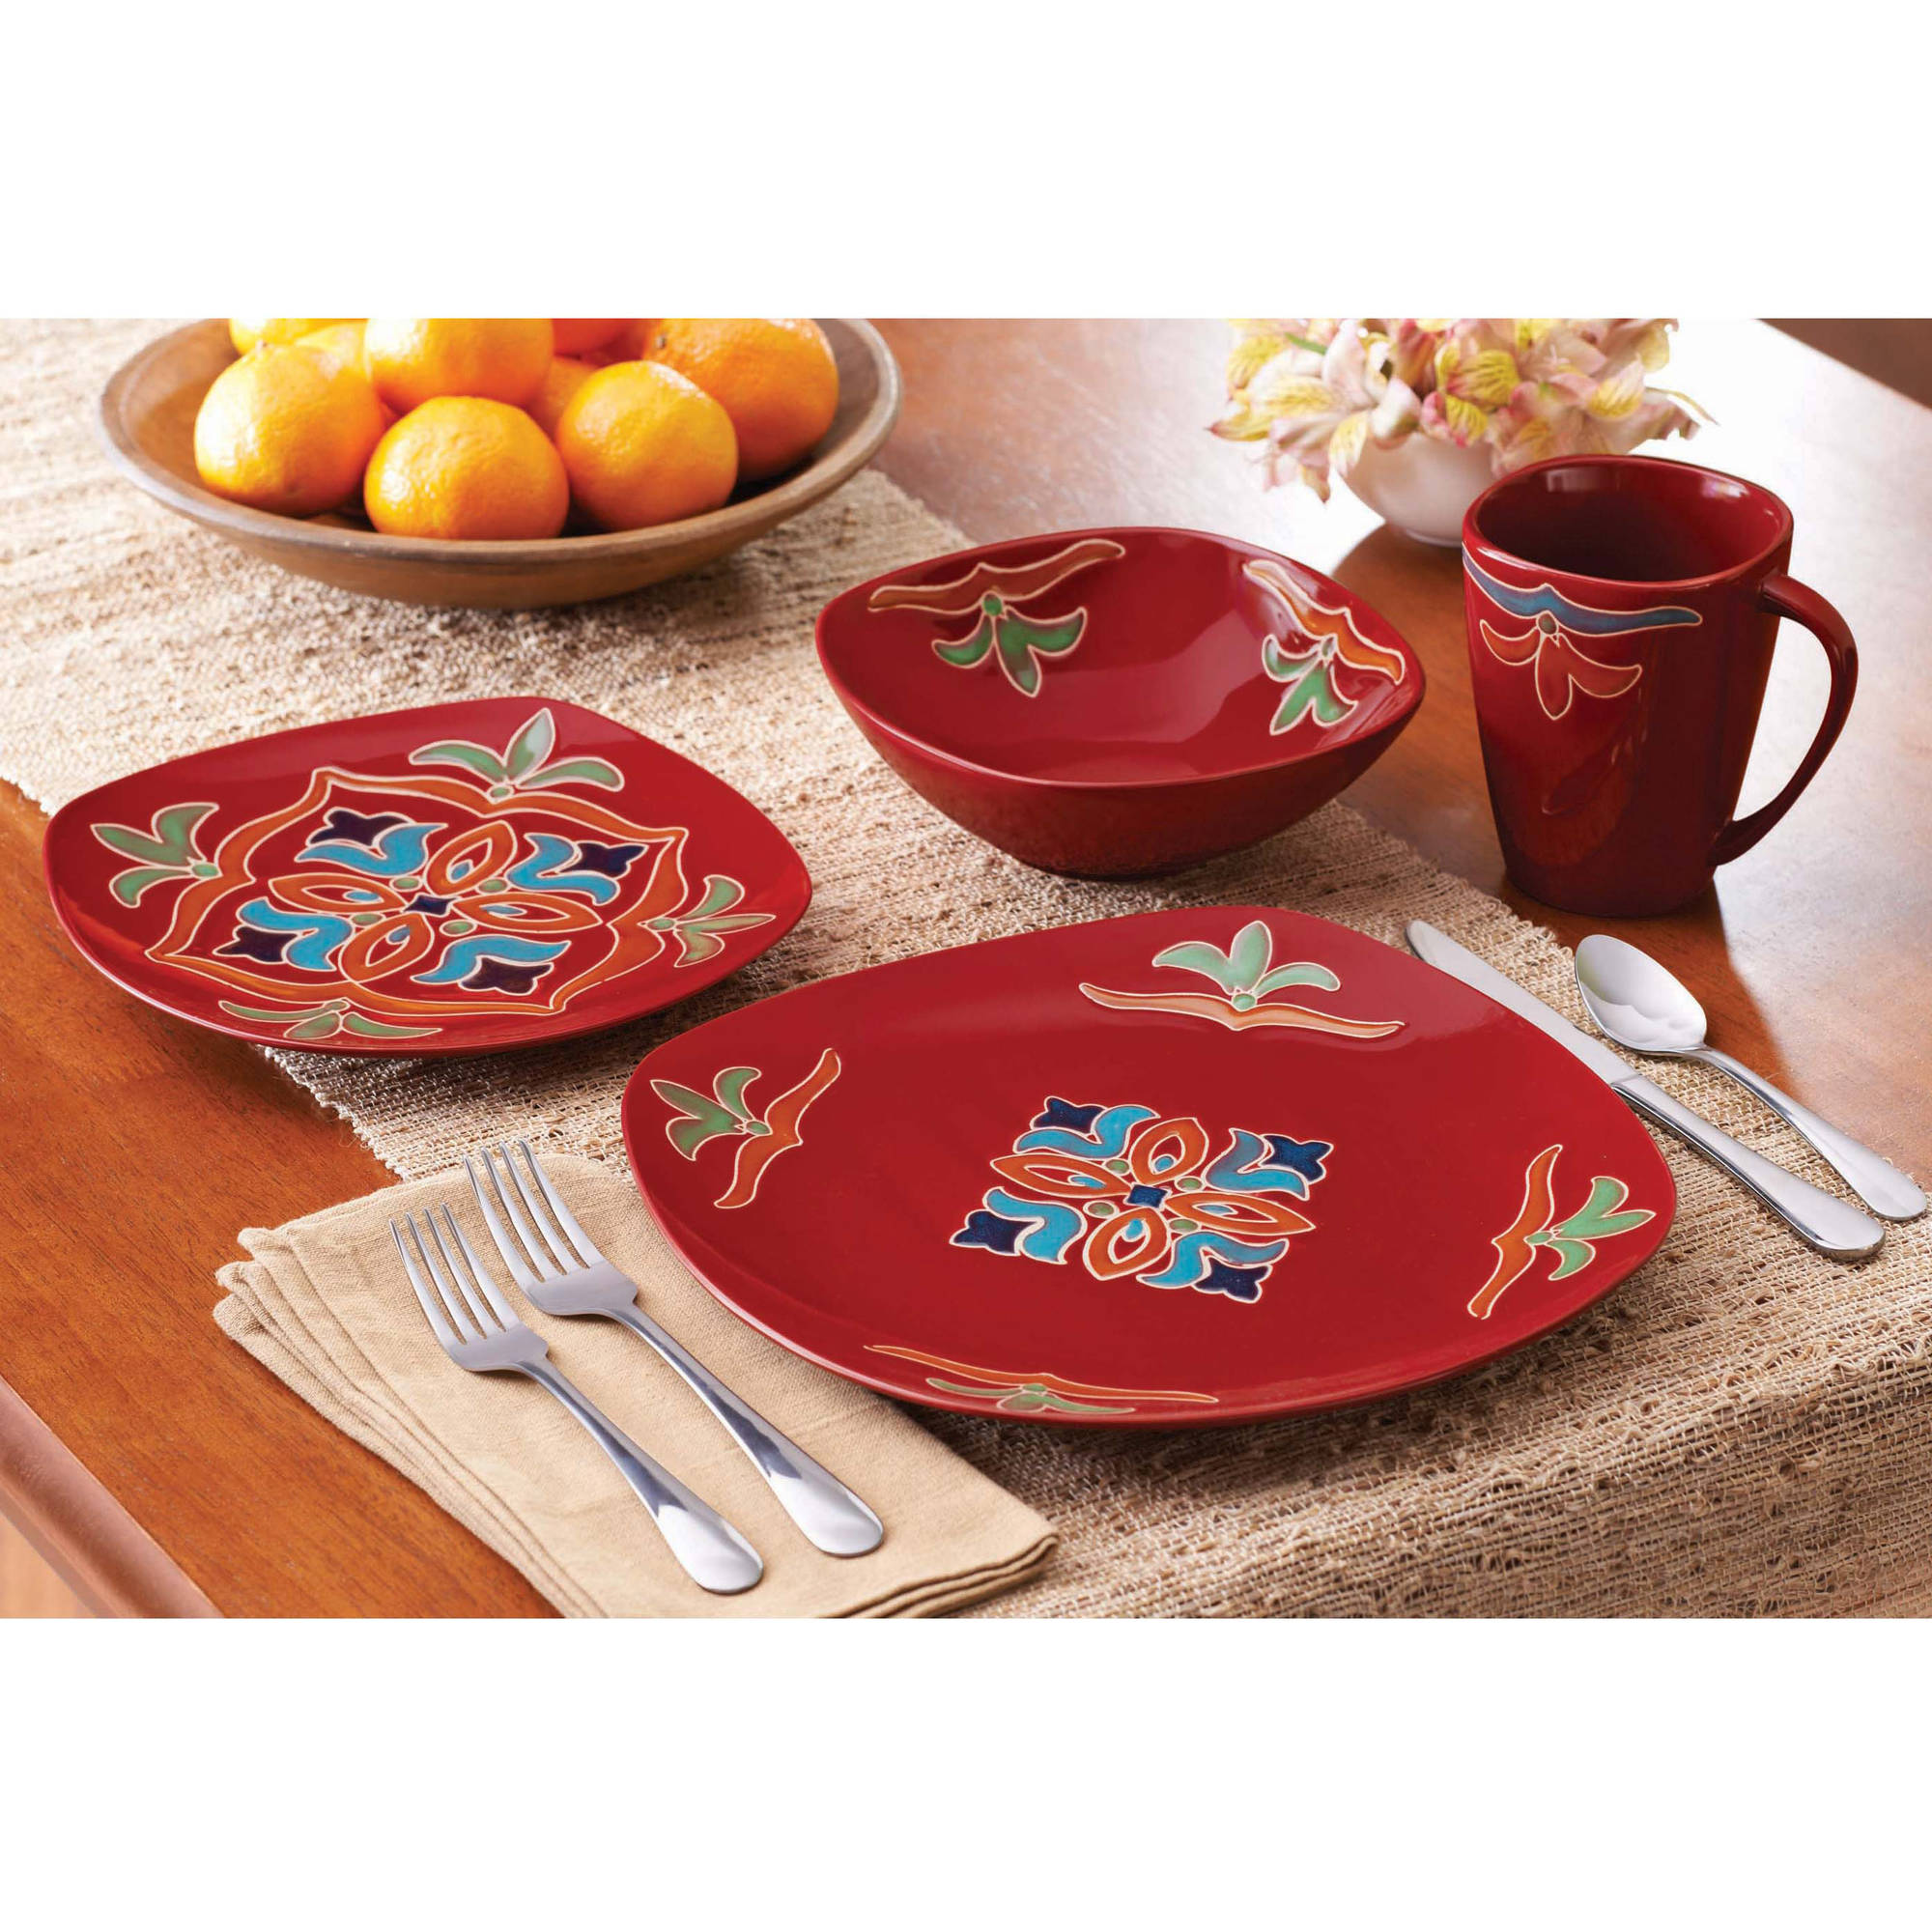 Better Homes and Gardens Medallion 16-Piece Square Dinnerware Set Red - Walmart.com  sc 1 st  Walmart & Better Homes and Gardens Medallion 16-Piece Square Dinnerware Set ...